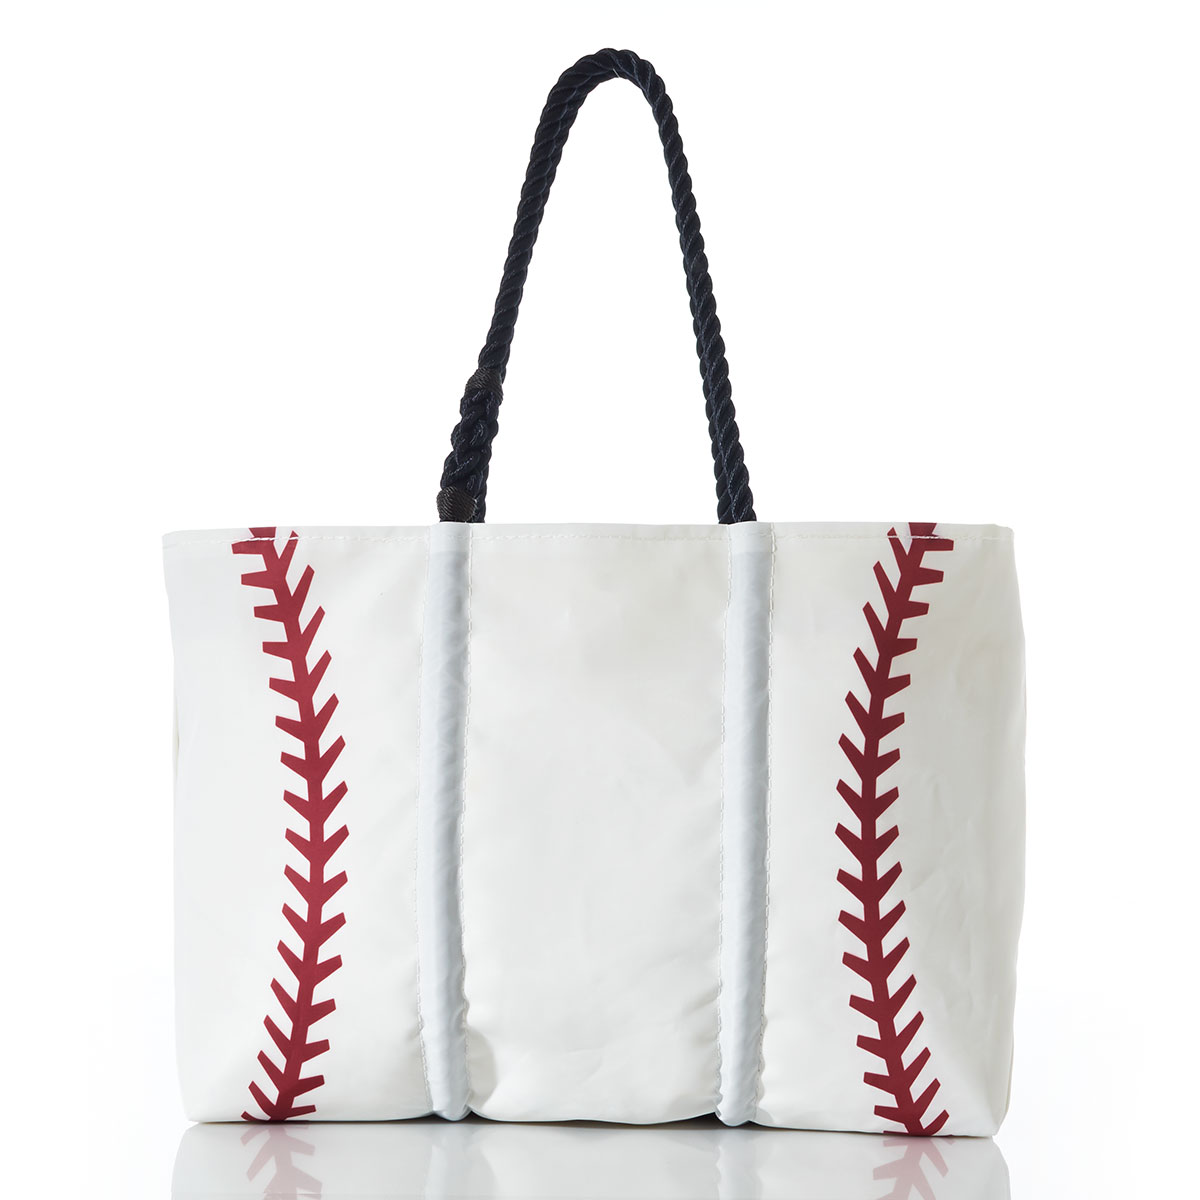 Home Run Tote